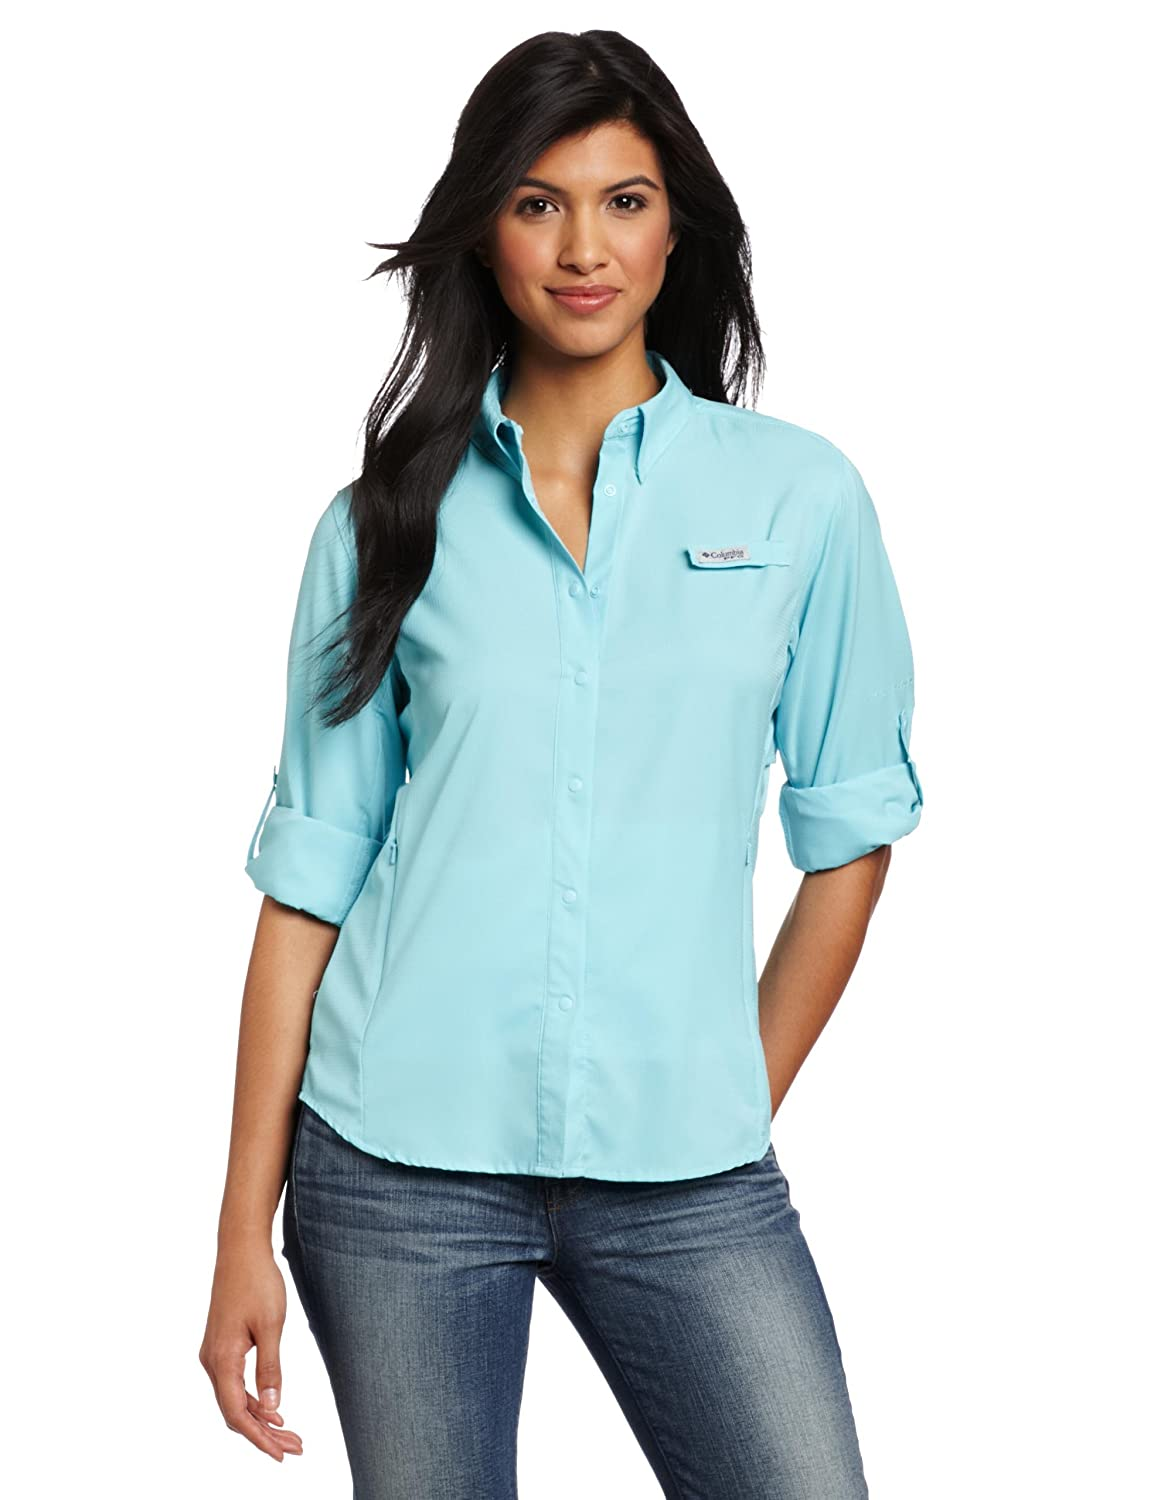 Columbia Sportswear Women's Plus-Size Tamiami II Long Sleeve Shirt 1275702-802